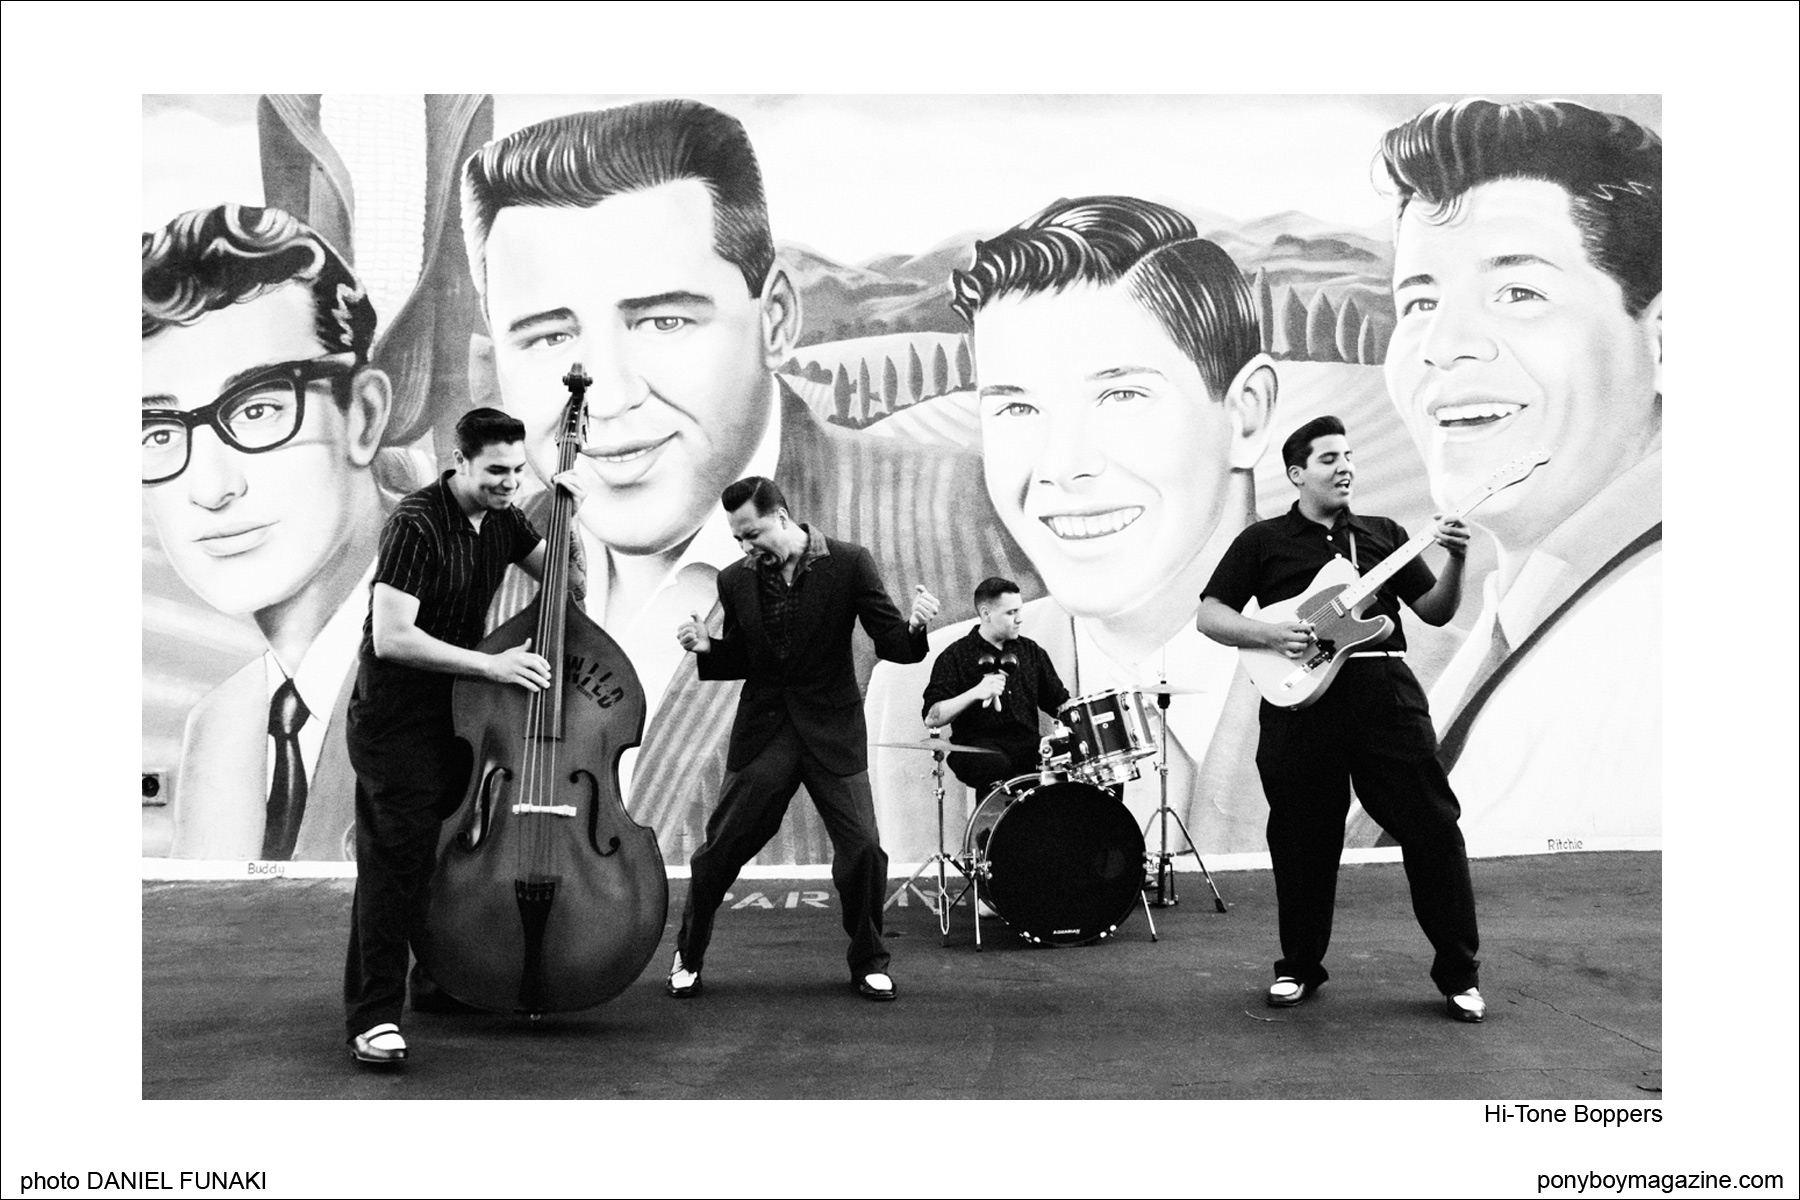 Rockabilly band Hi-Tone Boppers on The Wild Records label. Image by Daniel Funaki, Ponyboy Magazine.